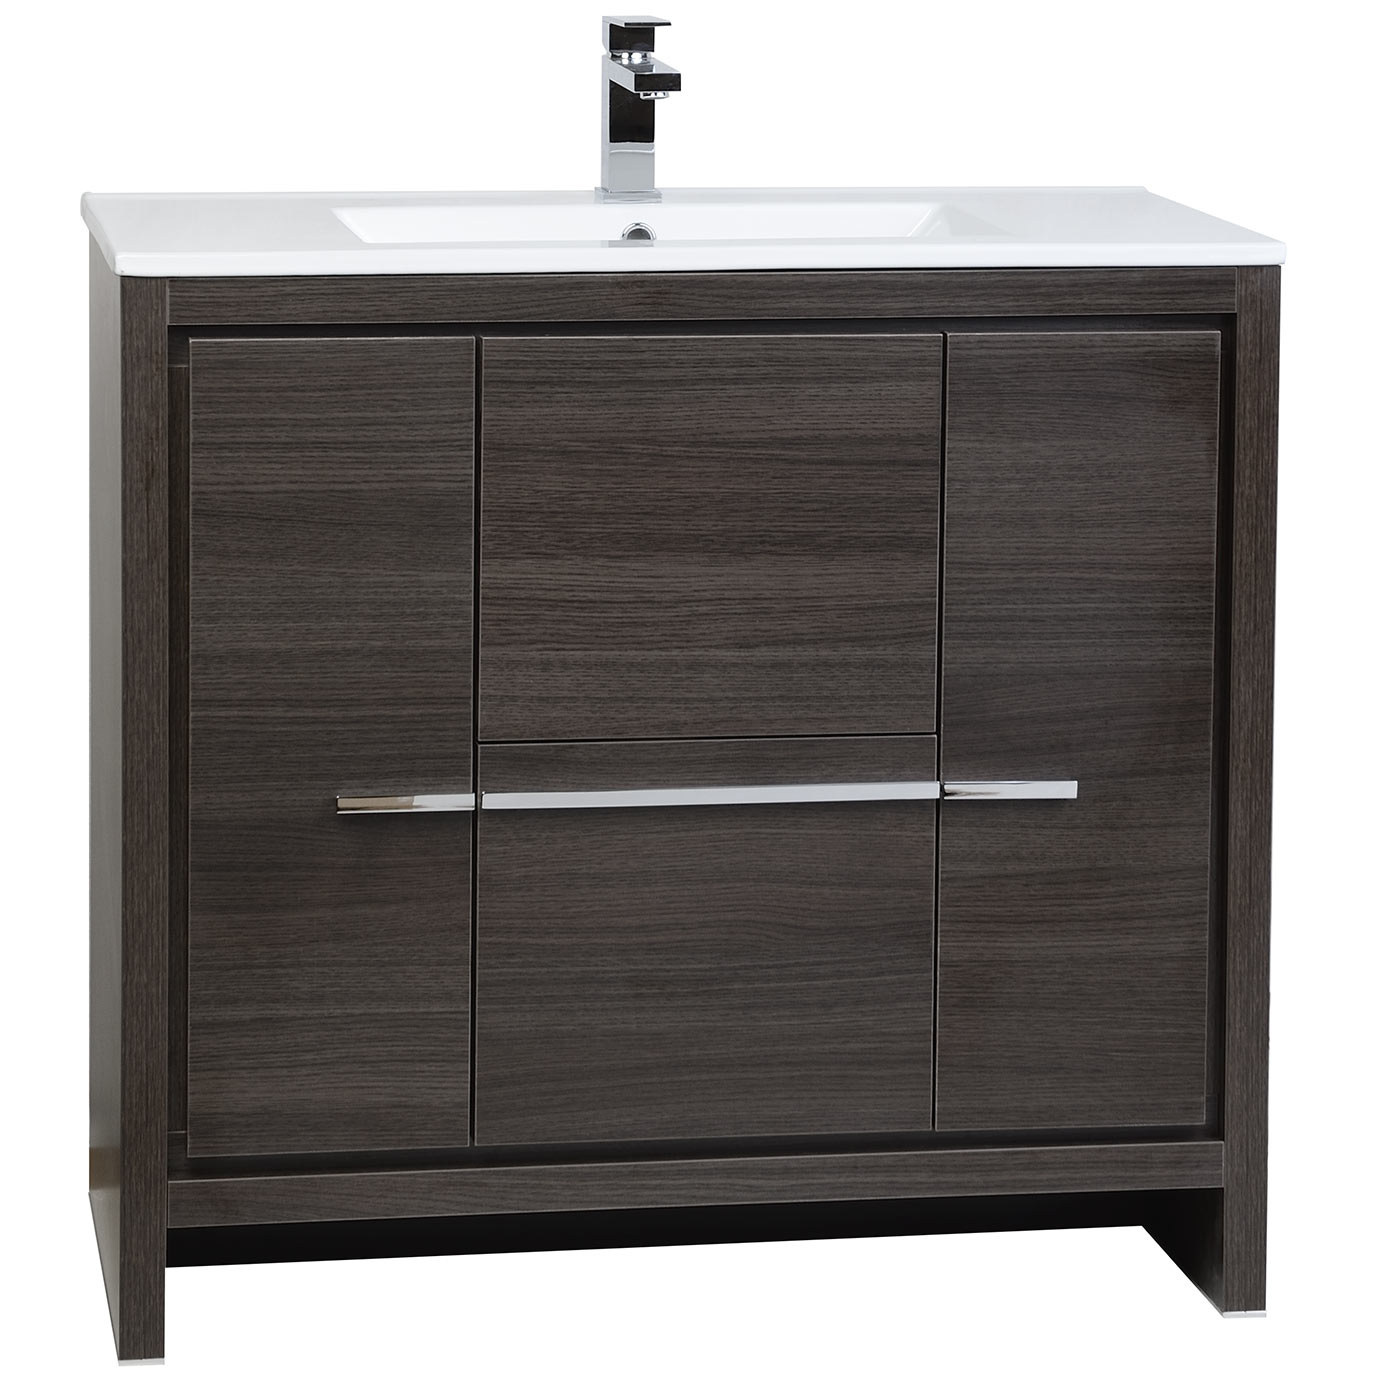 Buy Cbi Enna 36 Inch Grey Oak Modern Bathroom Vanity Tn La900 Go On